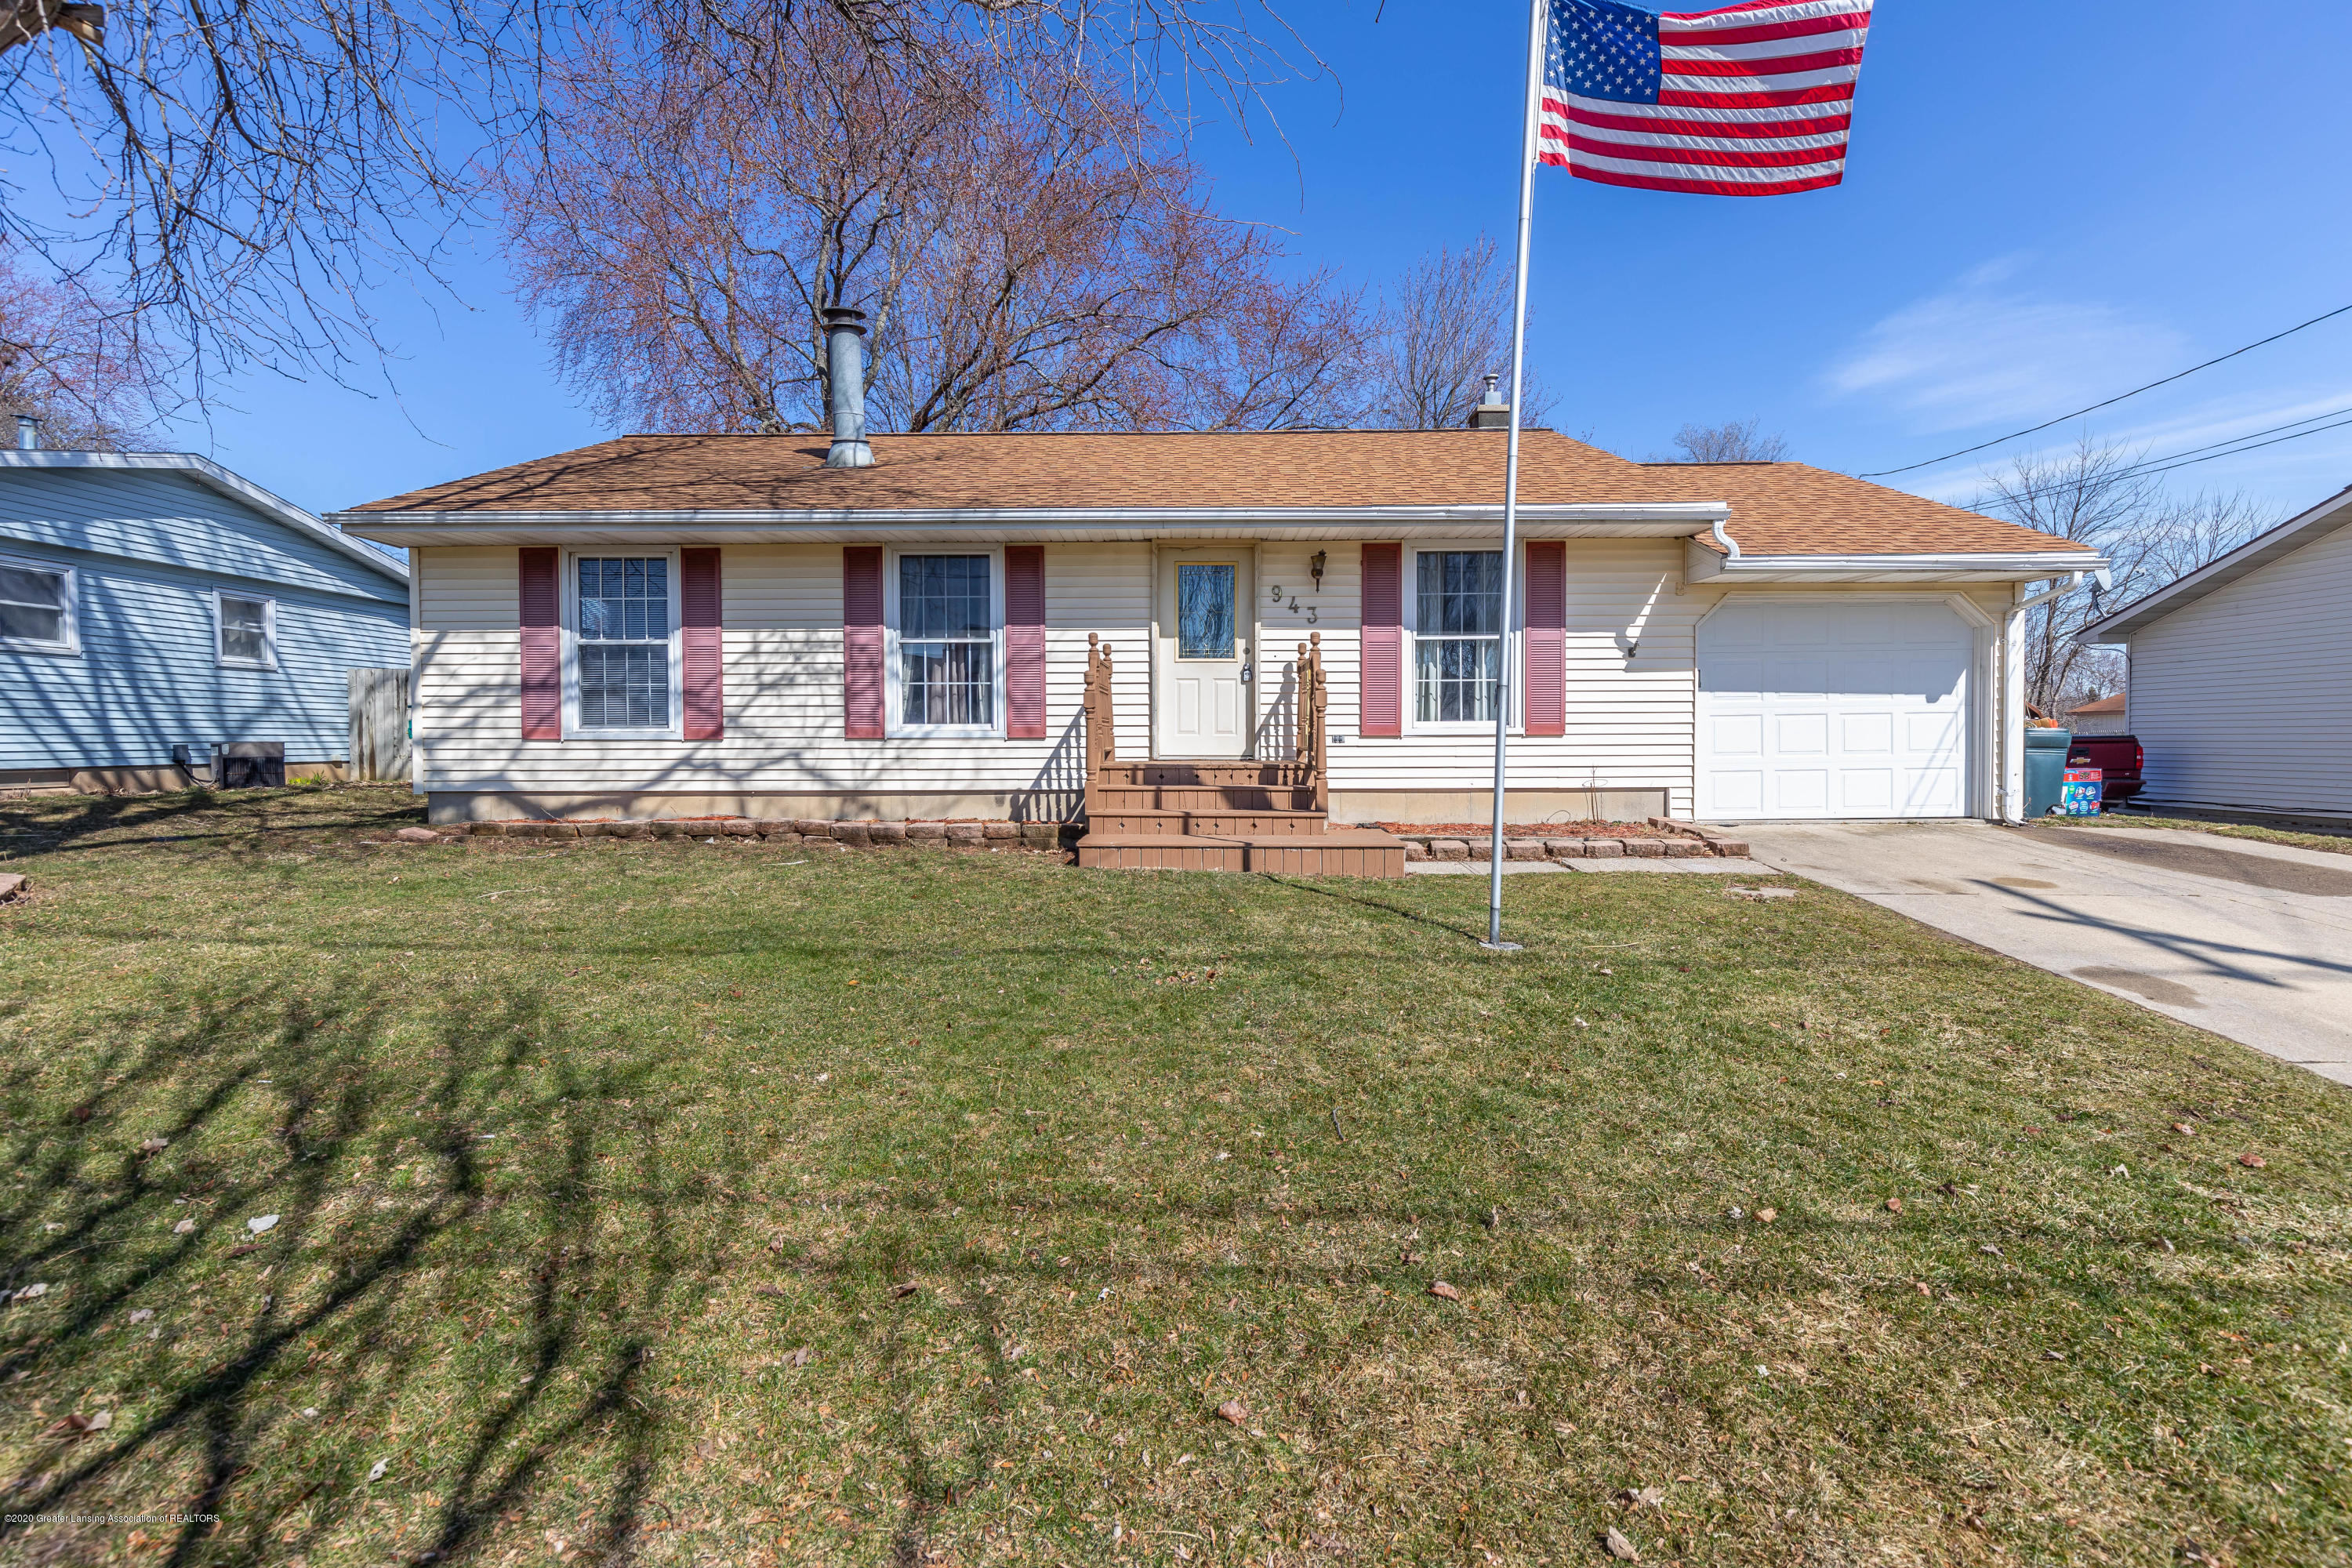 943 Eugenia Dr - eugfront FB POST - 1